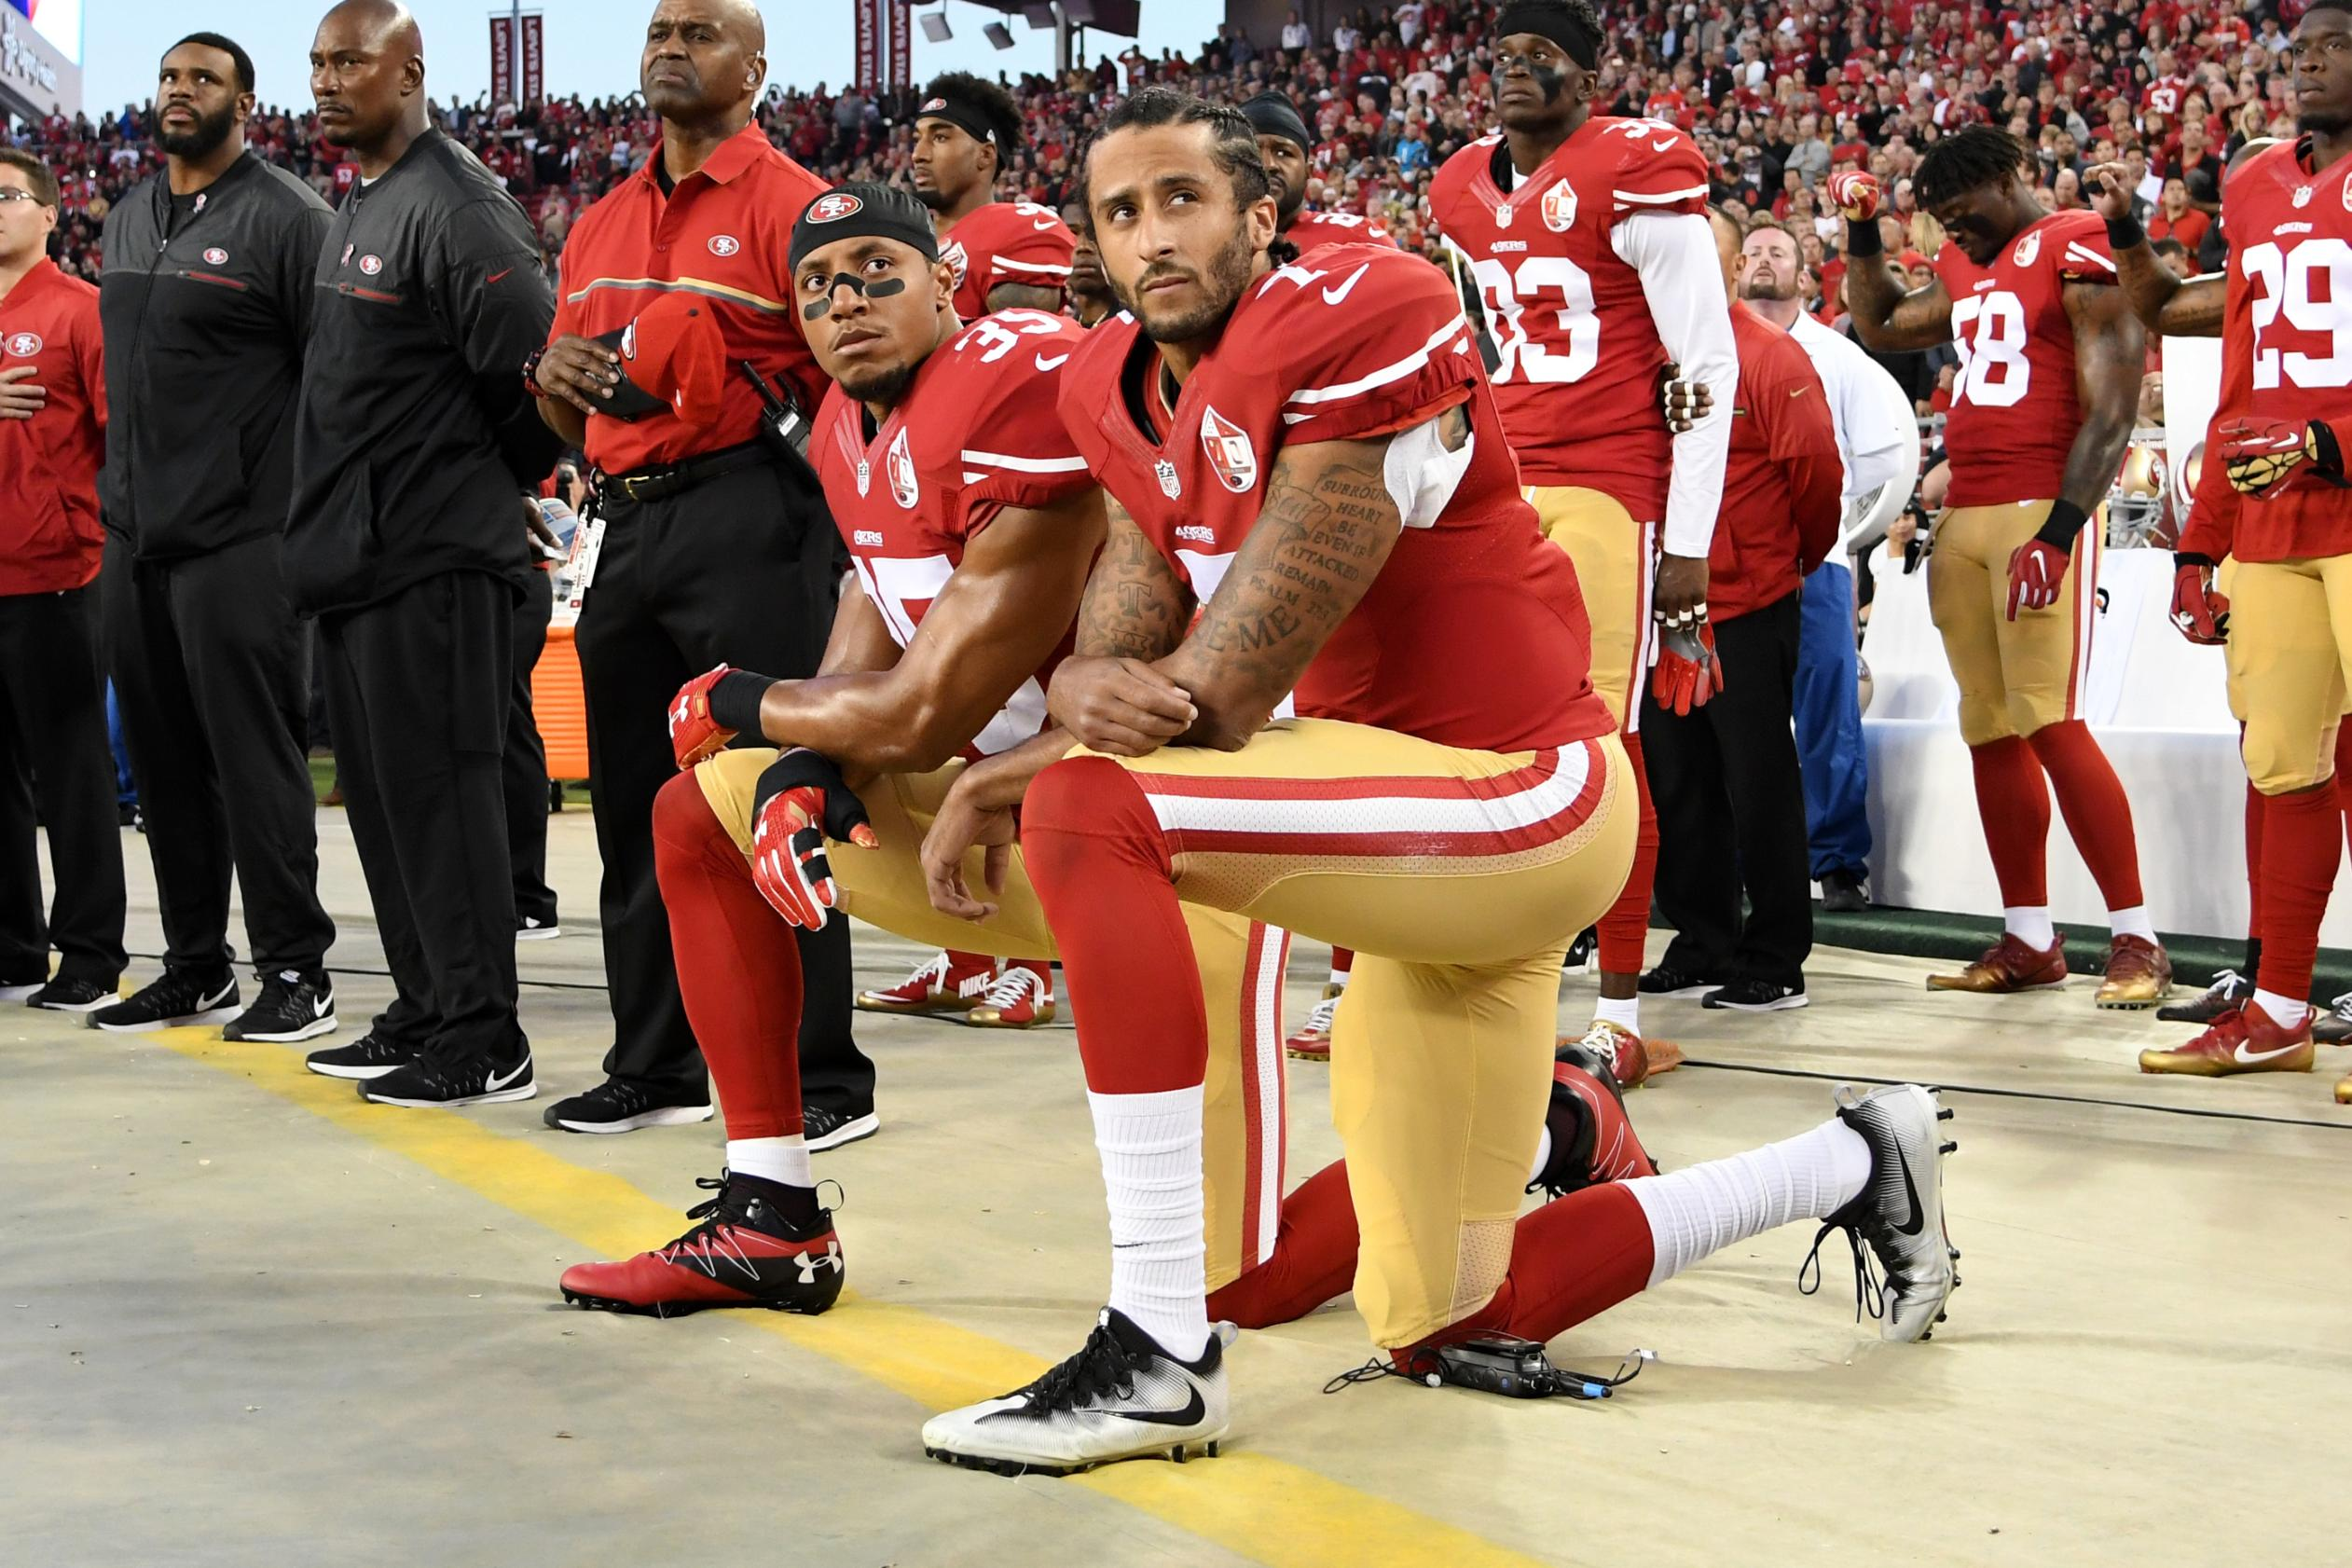 'The cries for peace will rain down' —  Colin Kaepernick among sporting figures to pay tribute to George Floyd